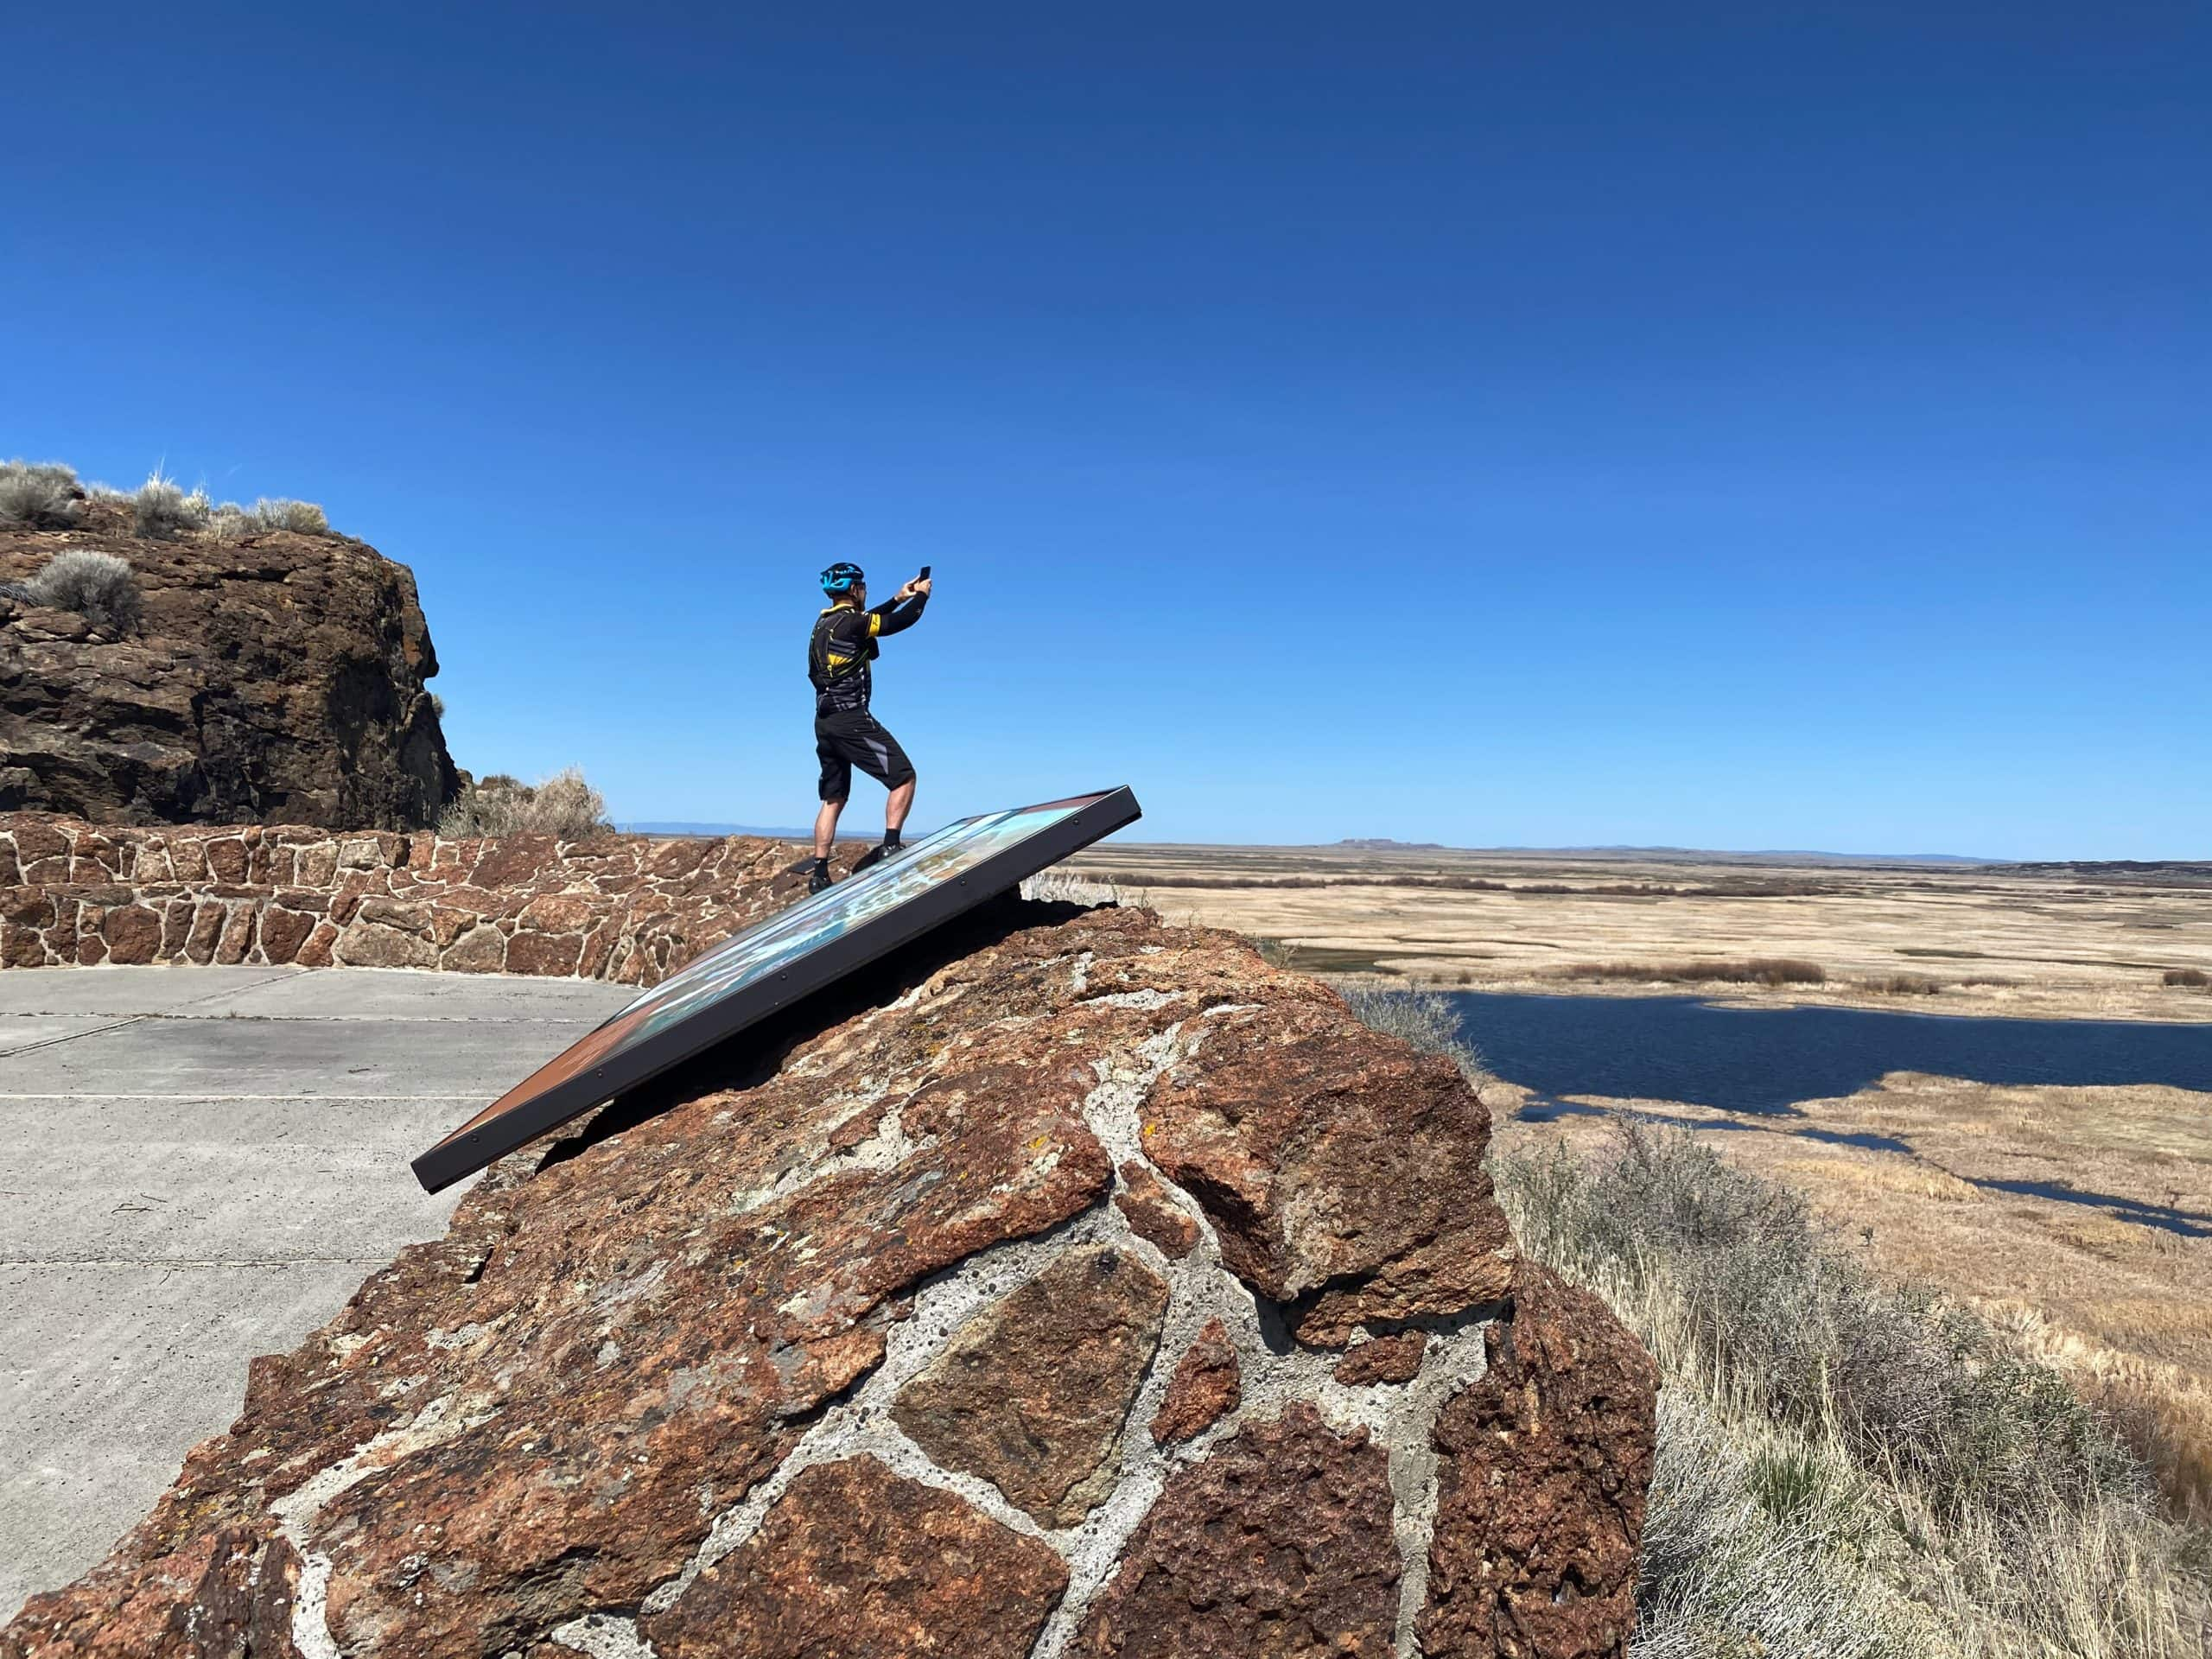 Captain O taking a picture from Buena Vista butte overlook in Malheur National Wildlife refuge.